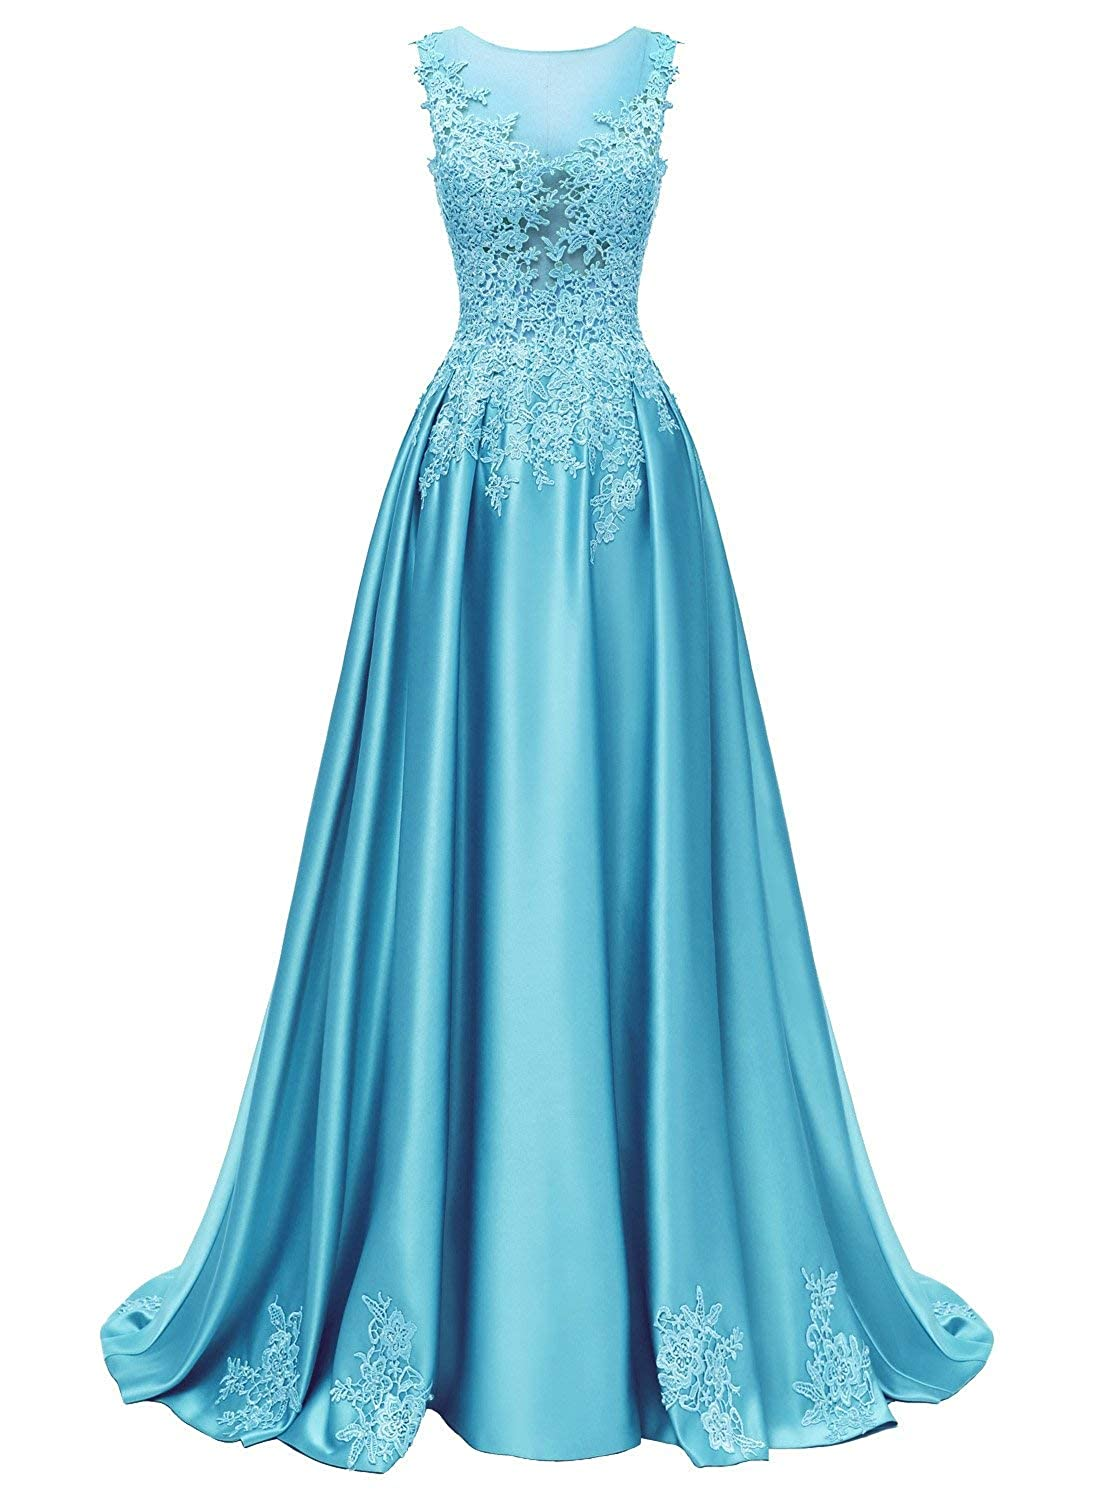 bluee Dressytailor Aline Scoop Long Satin Appliques Beading Prom Dress Formal Evening Gown with Pockets